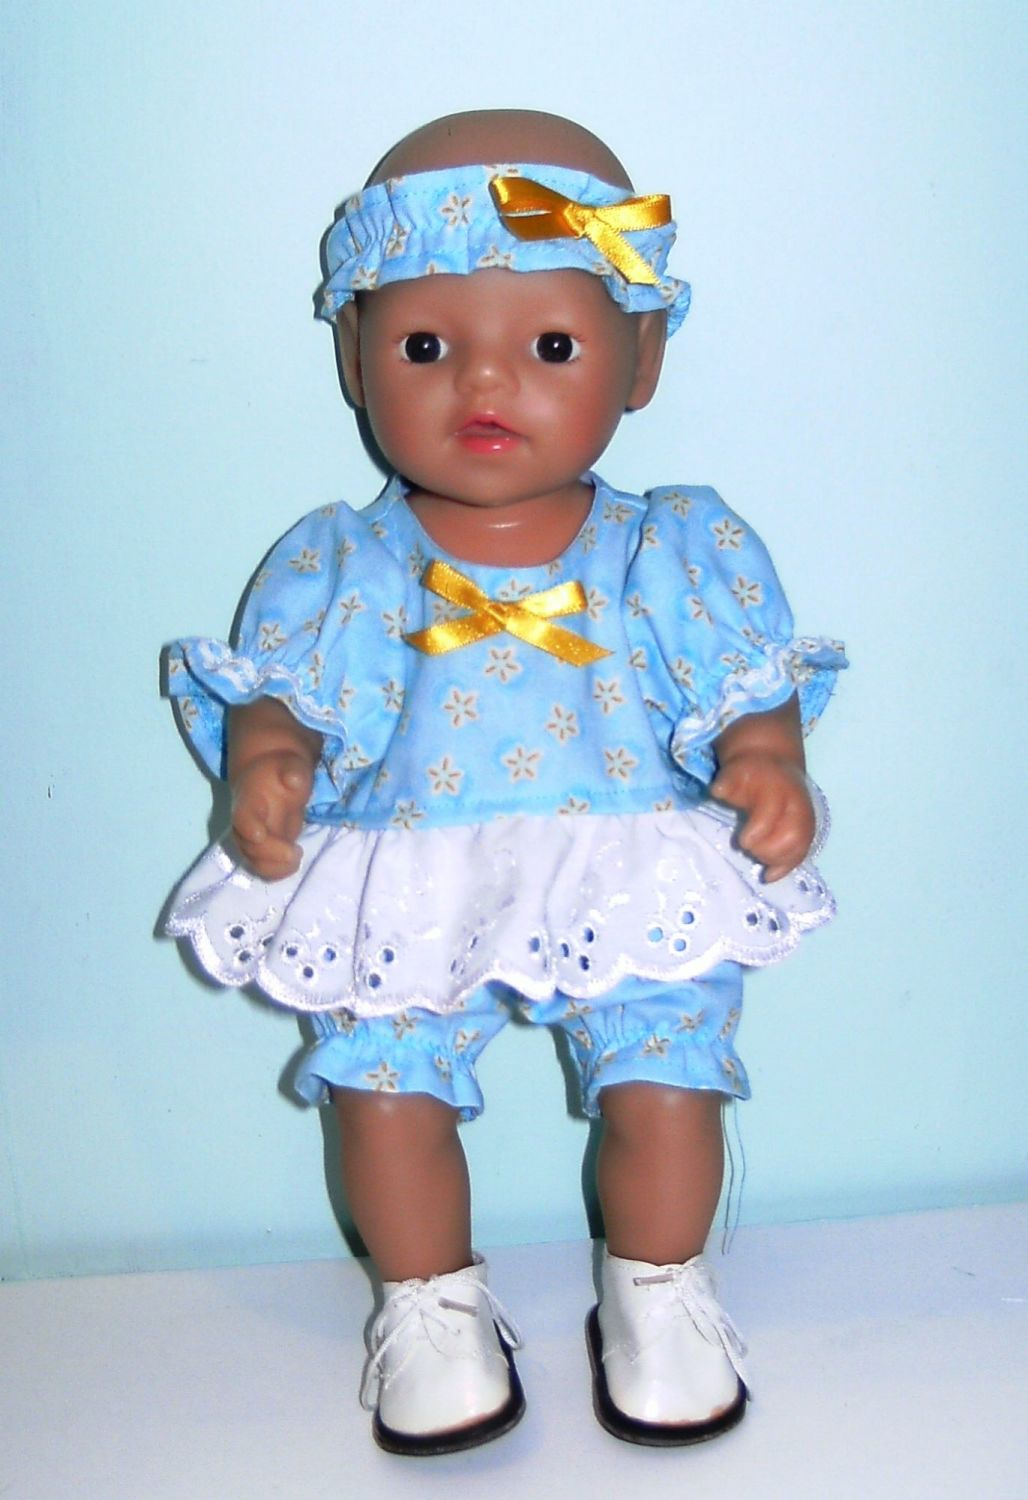 Doll's romper suit for 12 inch high baby girl doll